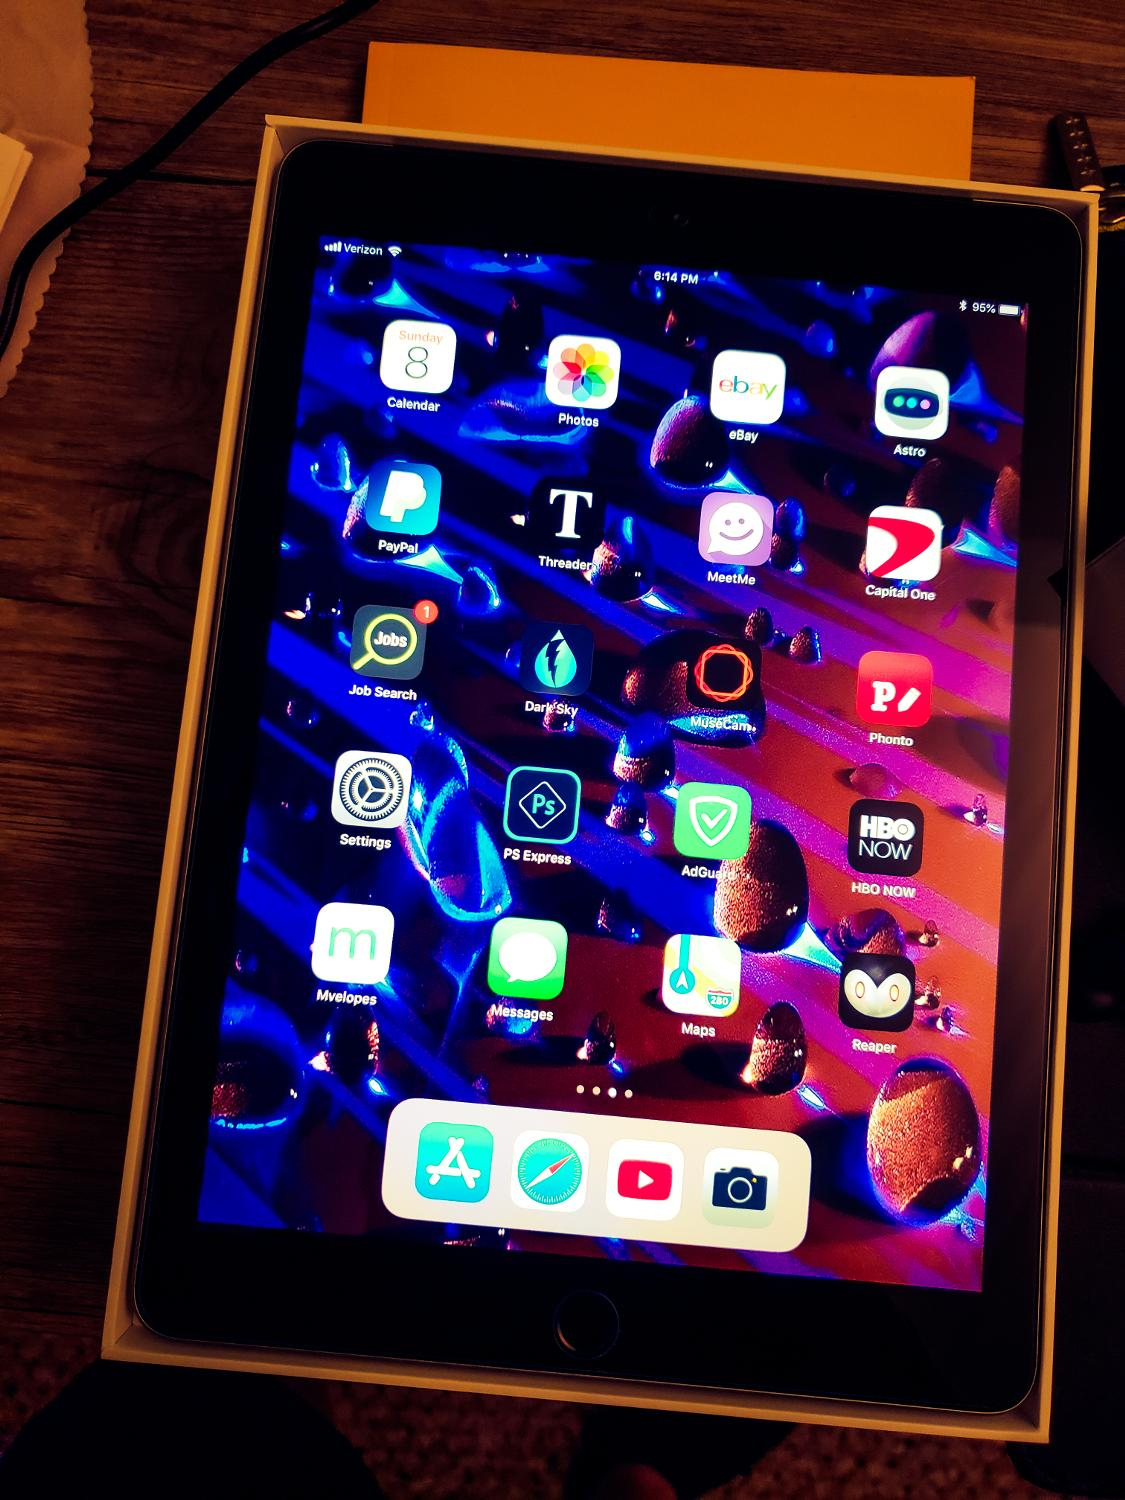 Best Apple Ipad Space Grey 9 7 In 128 Gb Model A1954 Bundle Vzn Agreement Please Read Description For Sale In Woodbury Minnesota For 2020